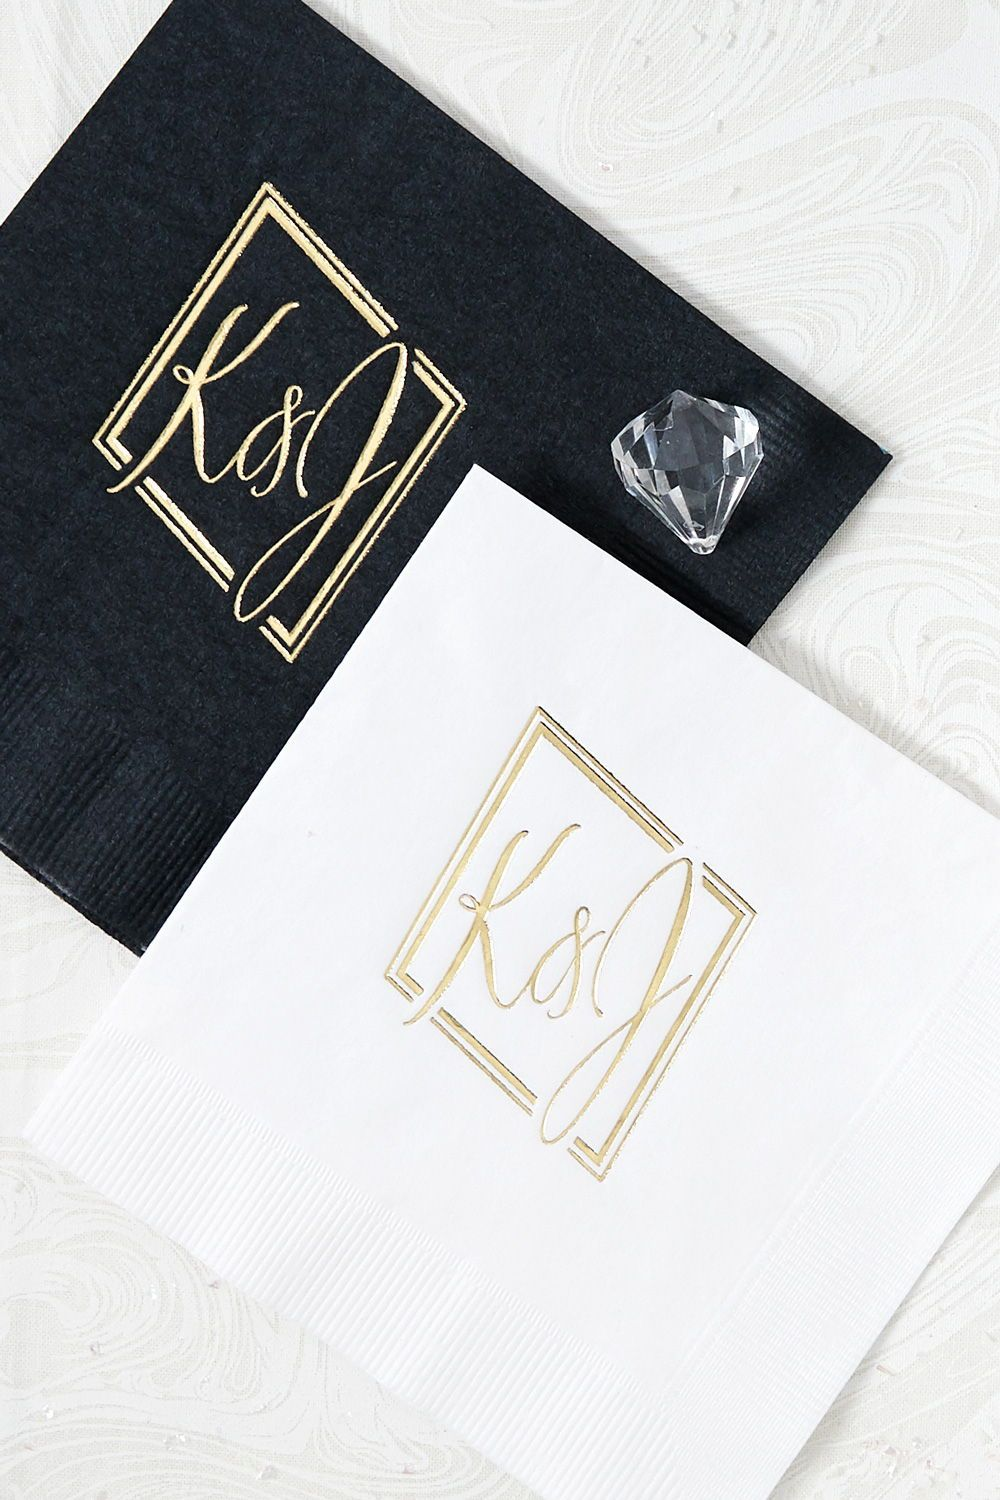 Customize Your Wedding With Personalized Cocktail Napkins Shop From Our Curated G Custom Wedding Napkins Wedding Cocktail Napkins Wedding Napkins Personalized